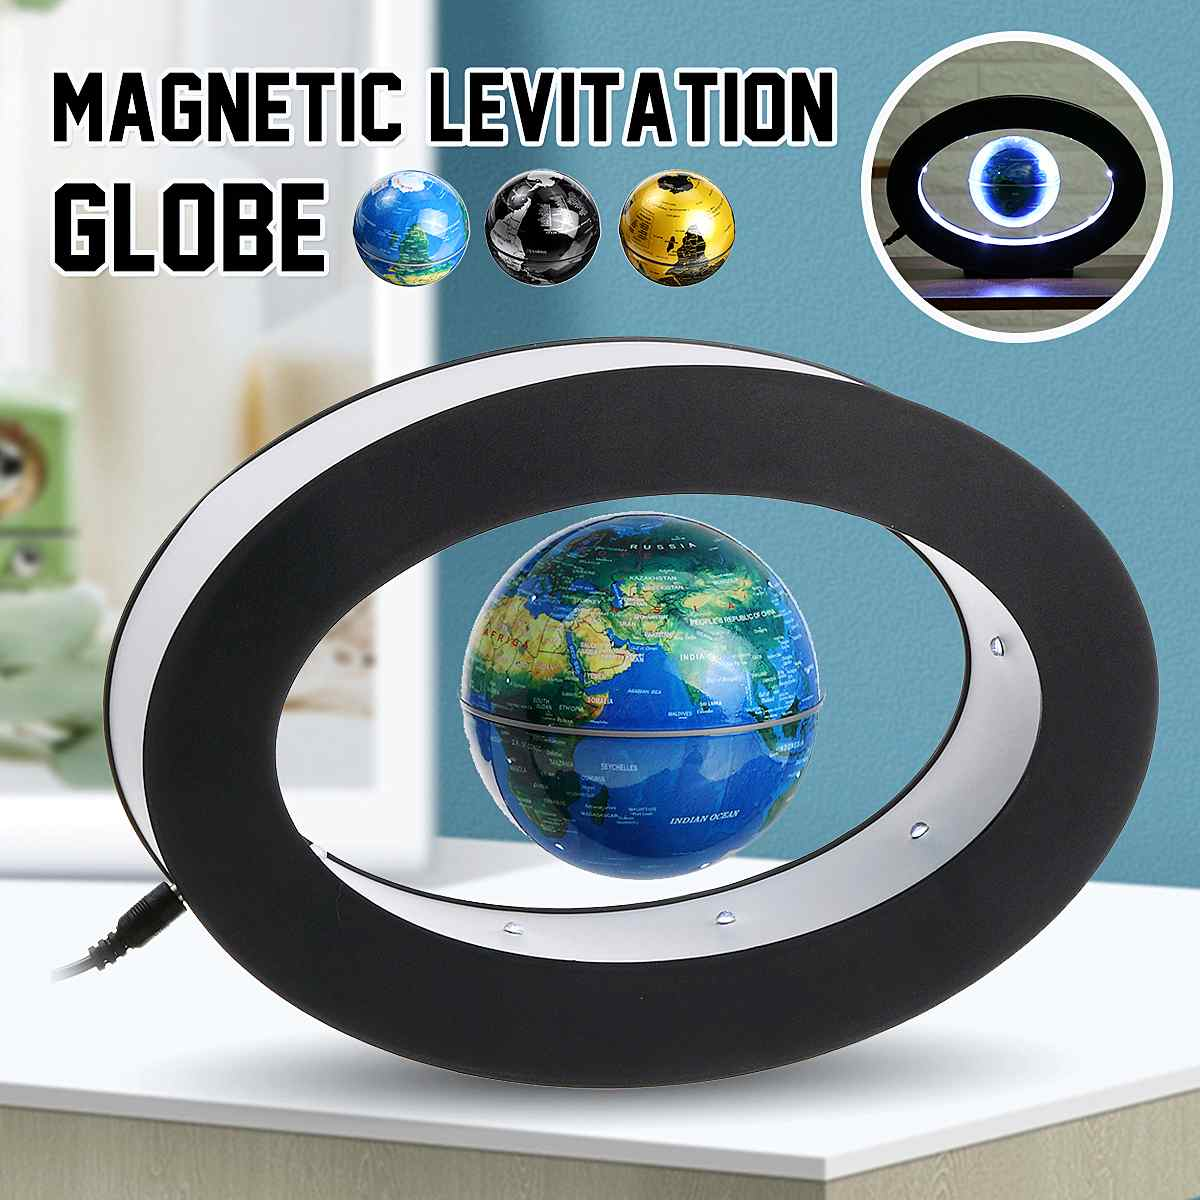 LED World Map Magnetic Levitation Floating Globe Desktop Antigravity Lamp Novelty Ball Night Light Lamp Office Home Decoration